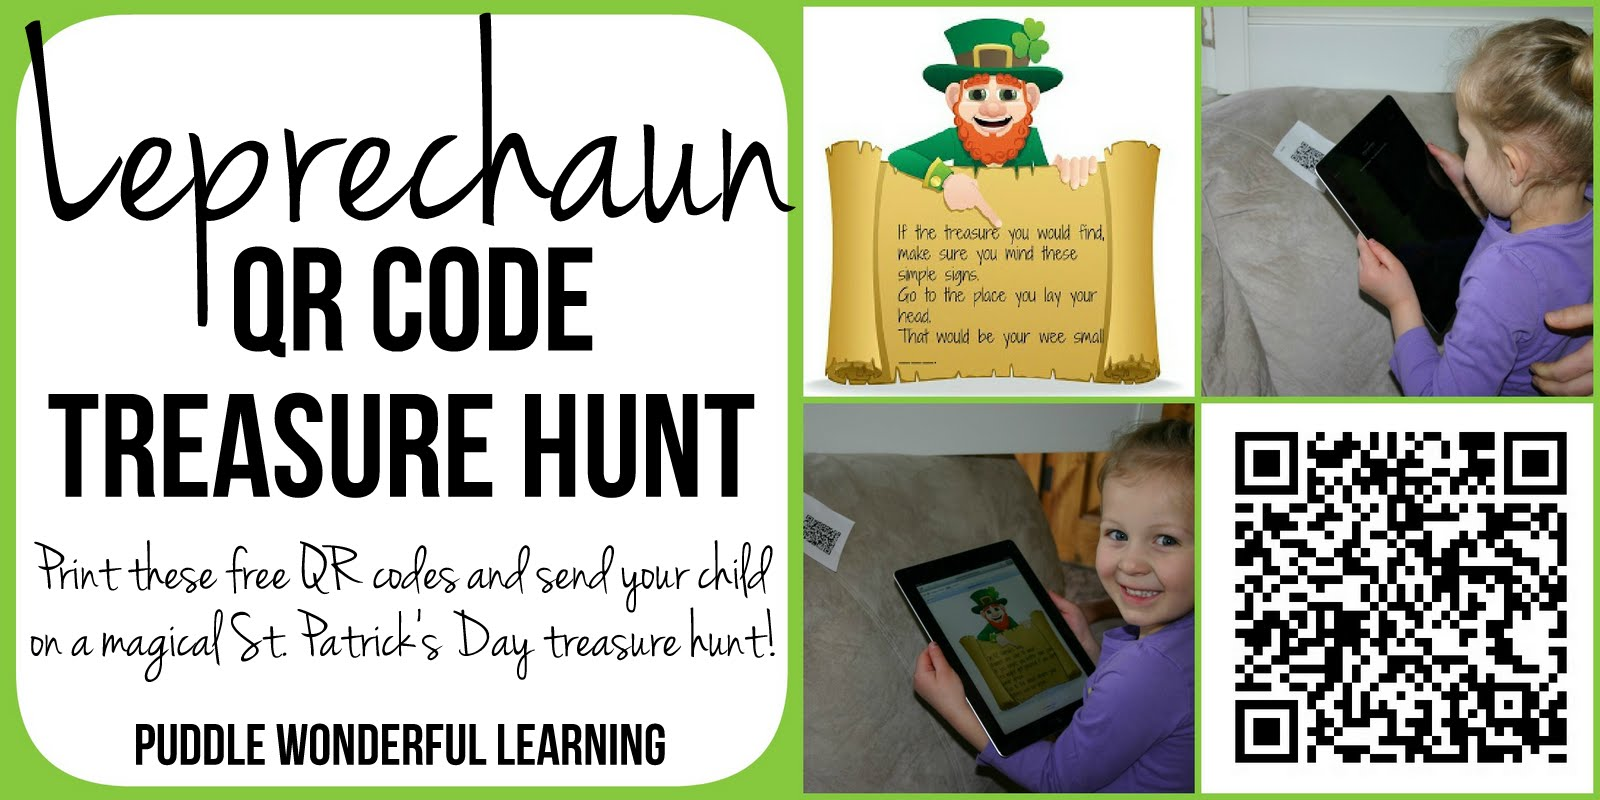 Puddle Wonderful Learning Elementary Activities Leprechaun Treasure Hunt With Qr Codes